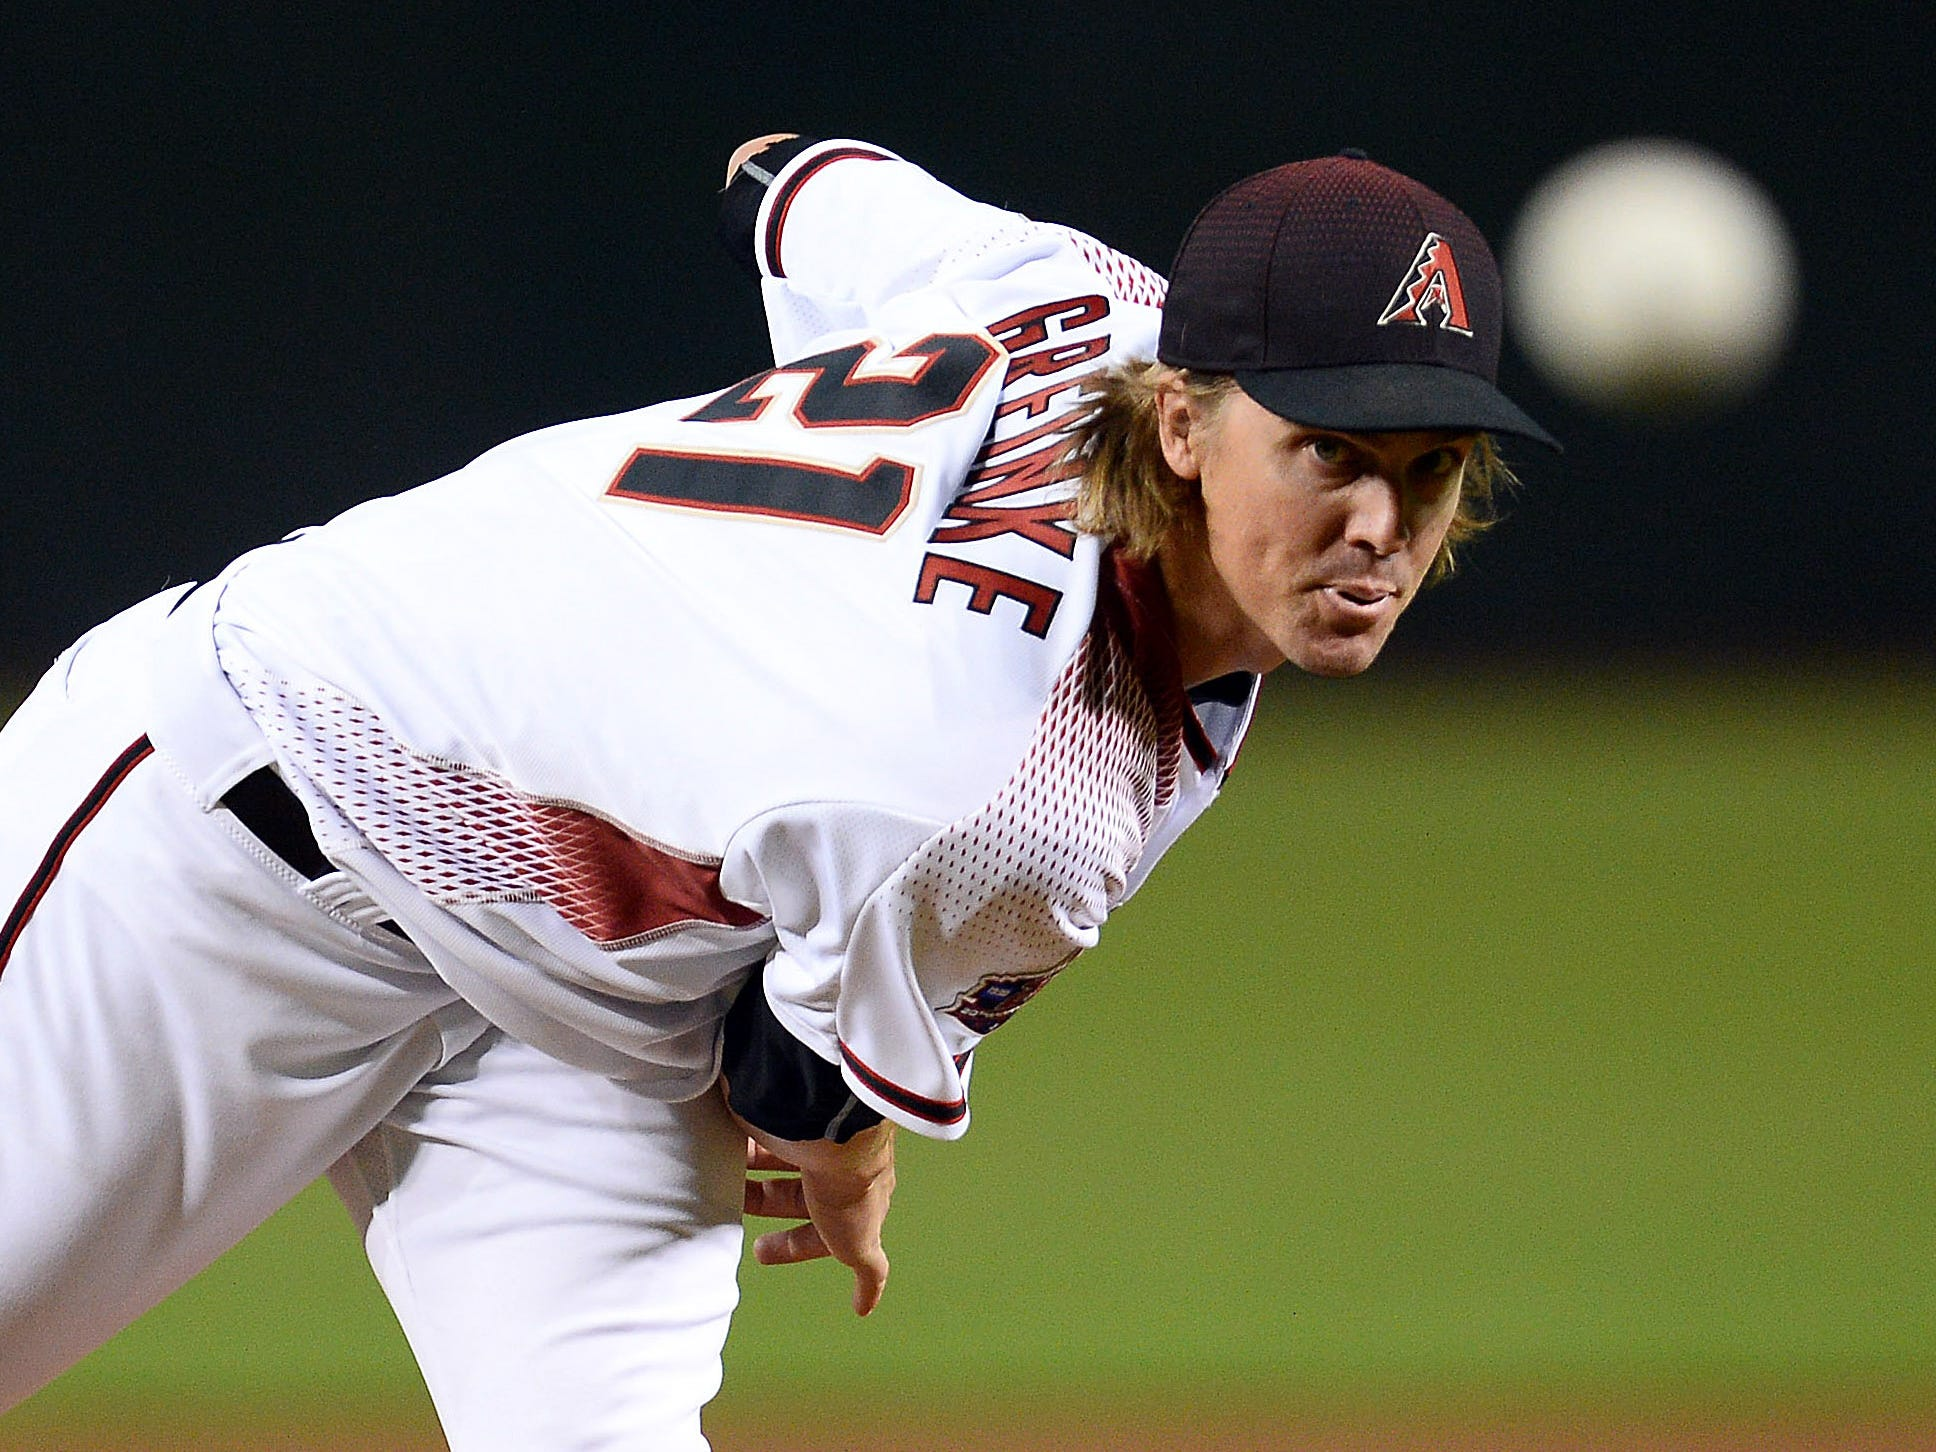 Sep 26, 2018; Phoenix, AZ, USA; Arizona Diamondbacks starting pitcher Zack Greinke (21) pitches against the Los Angeles Dodgers during the first inning at Chase Field.